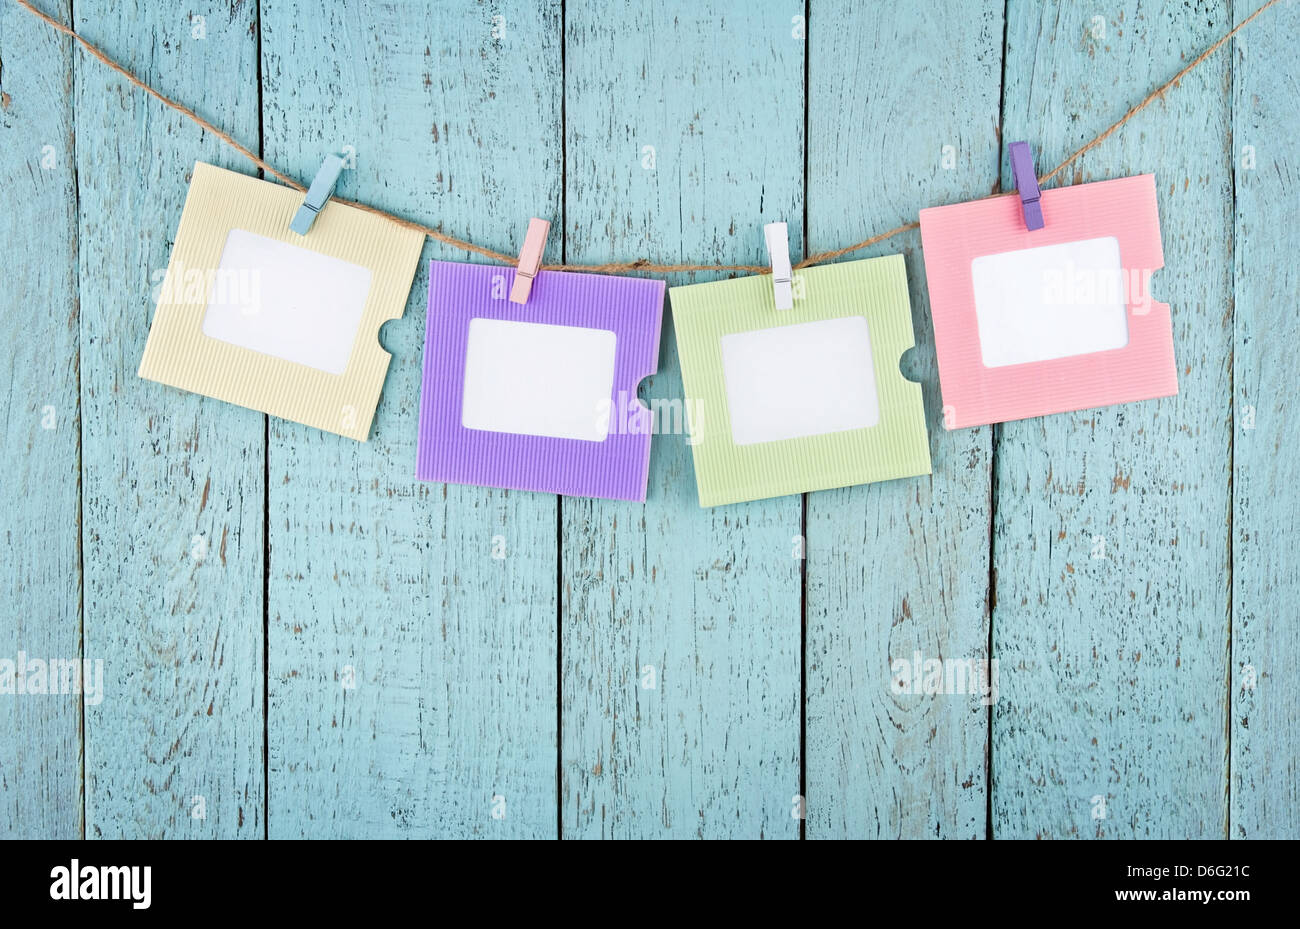 Four empty colorful photo frames or notes paper hanging with clothespins on wooden blue vintage shabby chic background - Stock Image